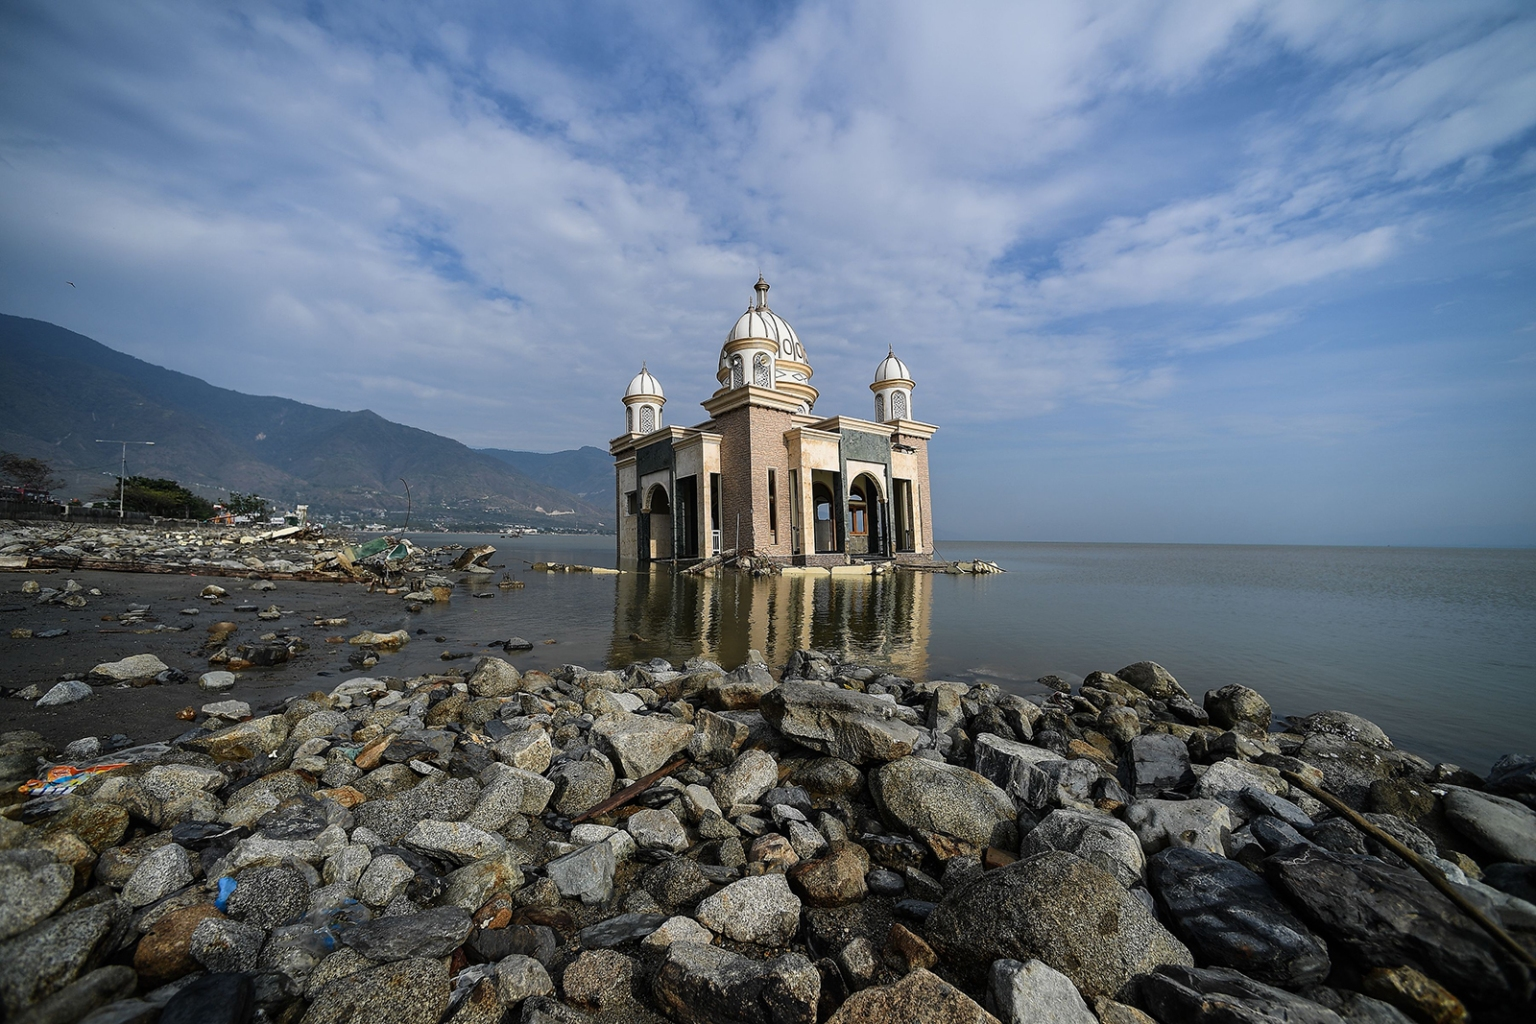 A damaged mosque is seen by the tsunami-devastated coast in Palu, Indonesia, on Oct. 4. MOHD RASFAN/AFP/GETTY IMAGES